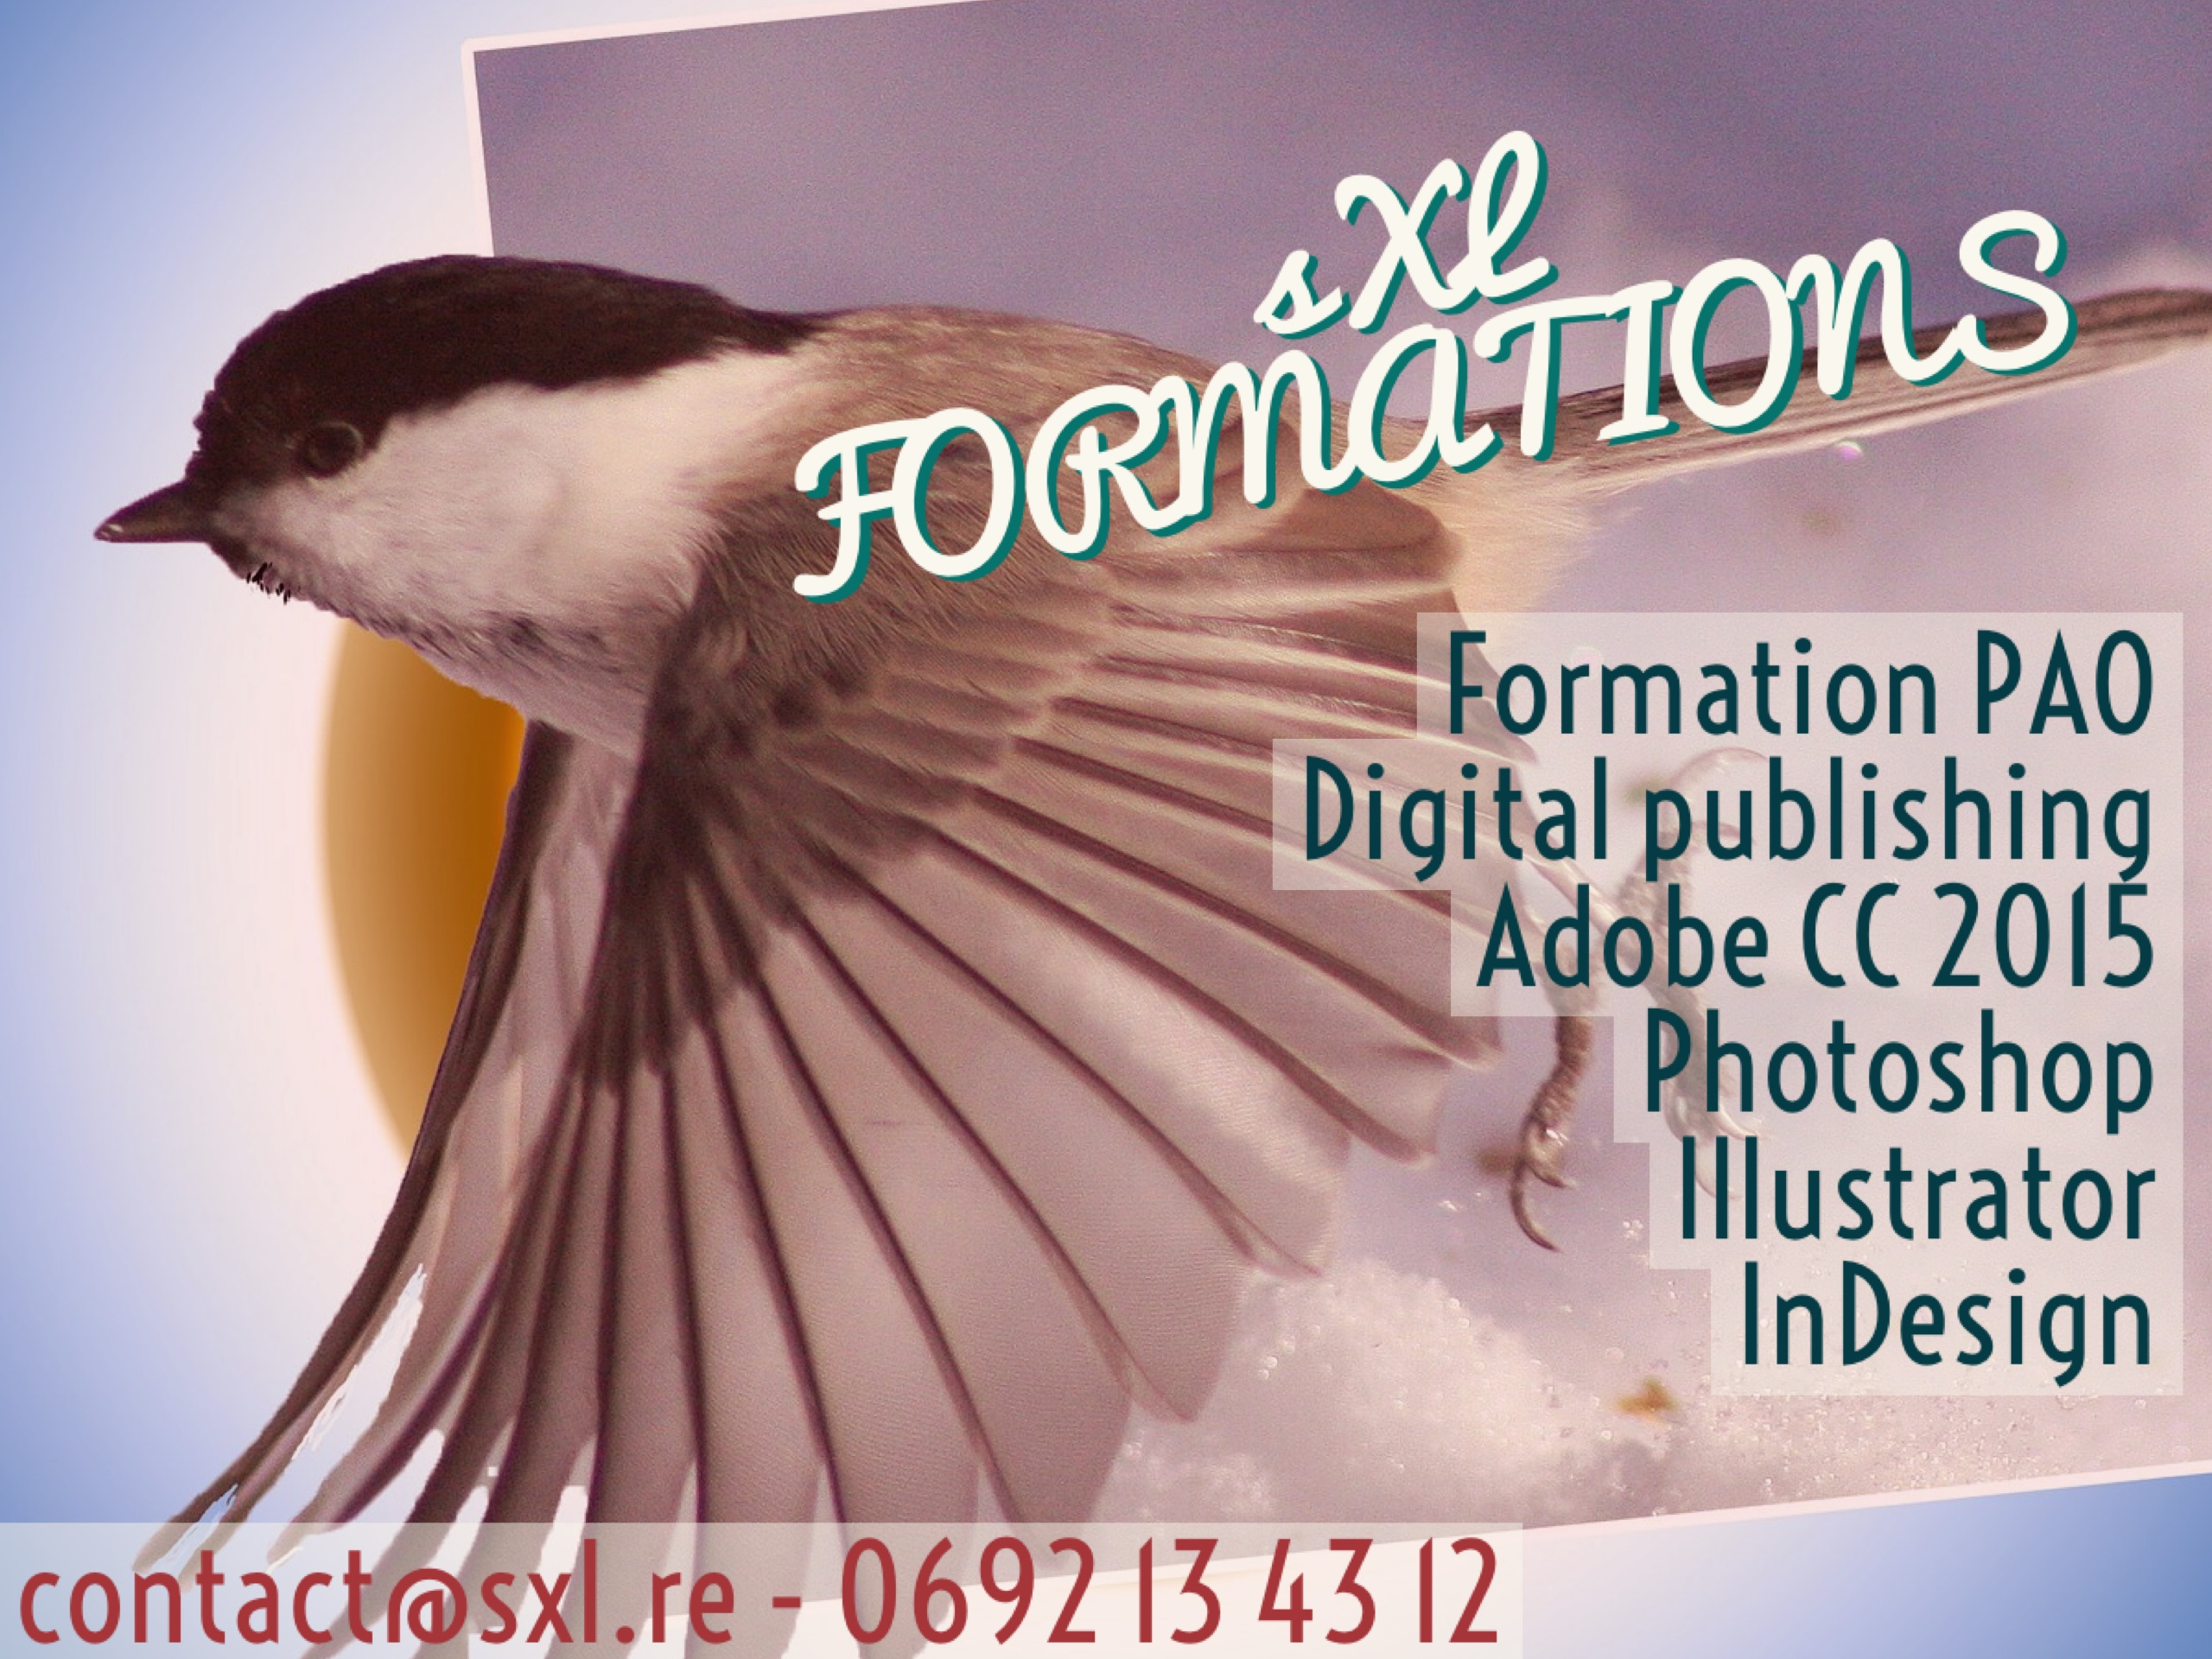 Image formation PAO Ile de la Réunion - Adobe Photoshop, Illustrator, InDesign.